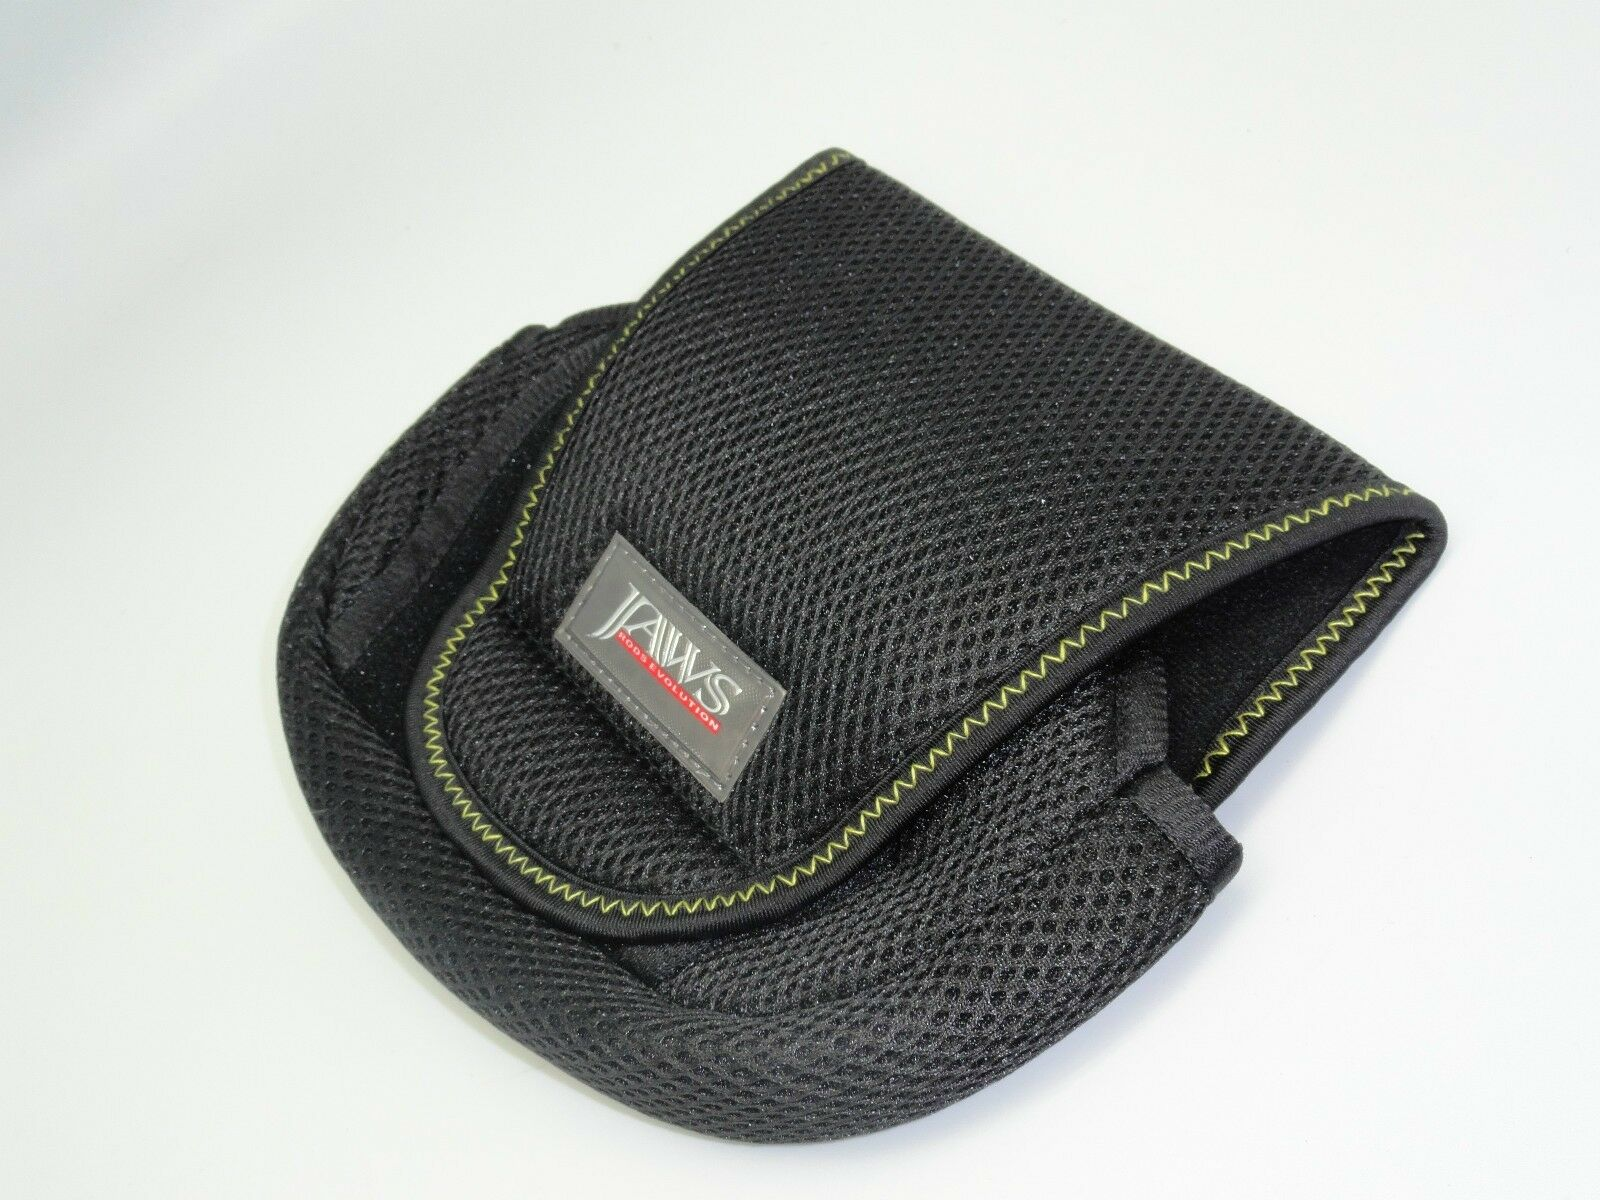 2 Jaws  L  Spinning Reel Cover Pouch for Daiwa, Penn, Shimano Reels